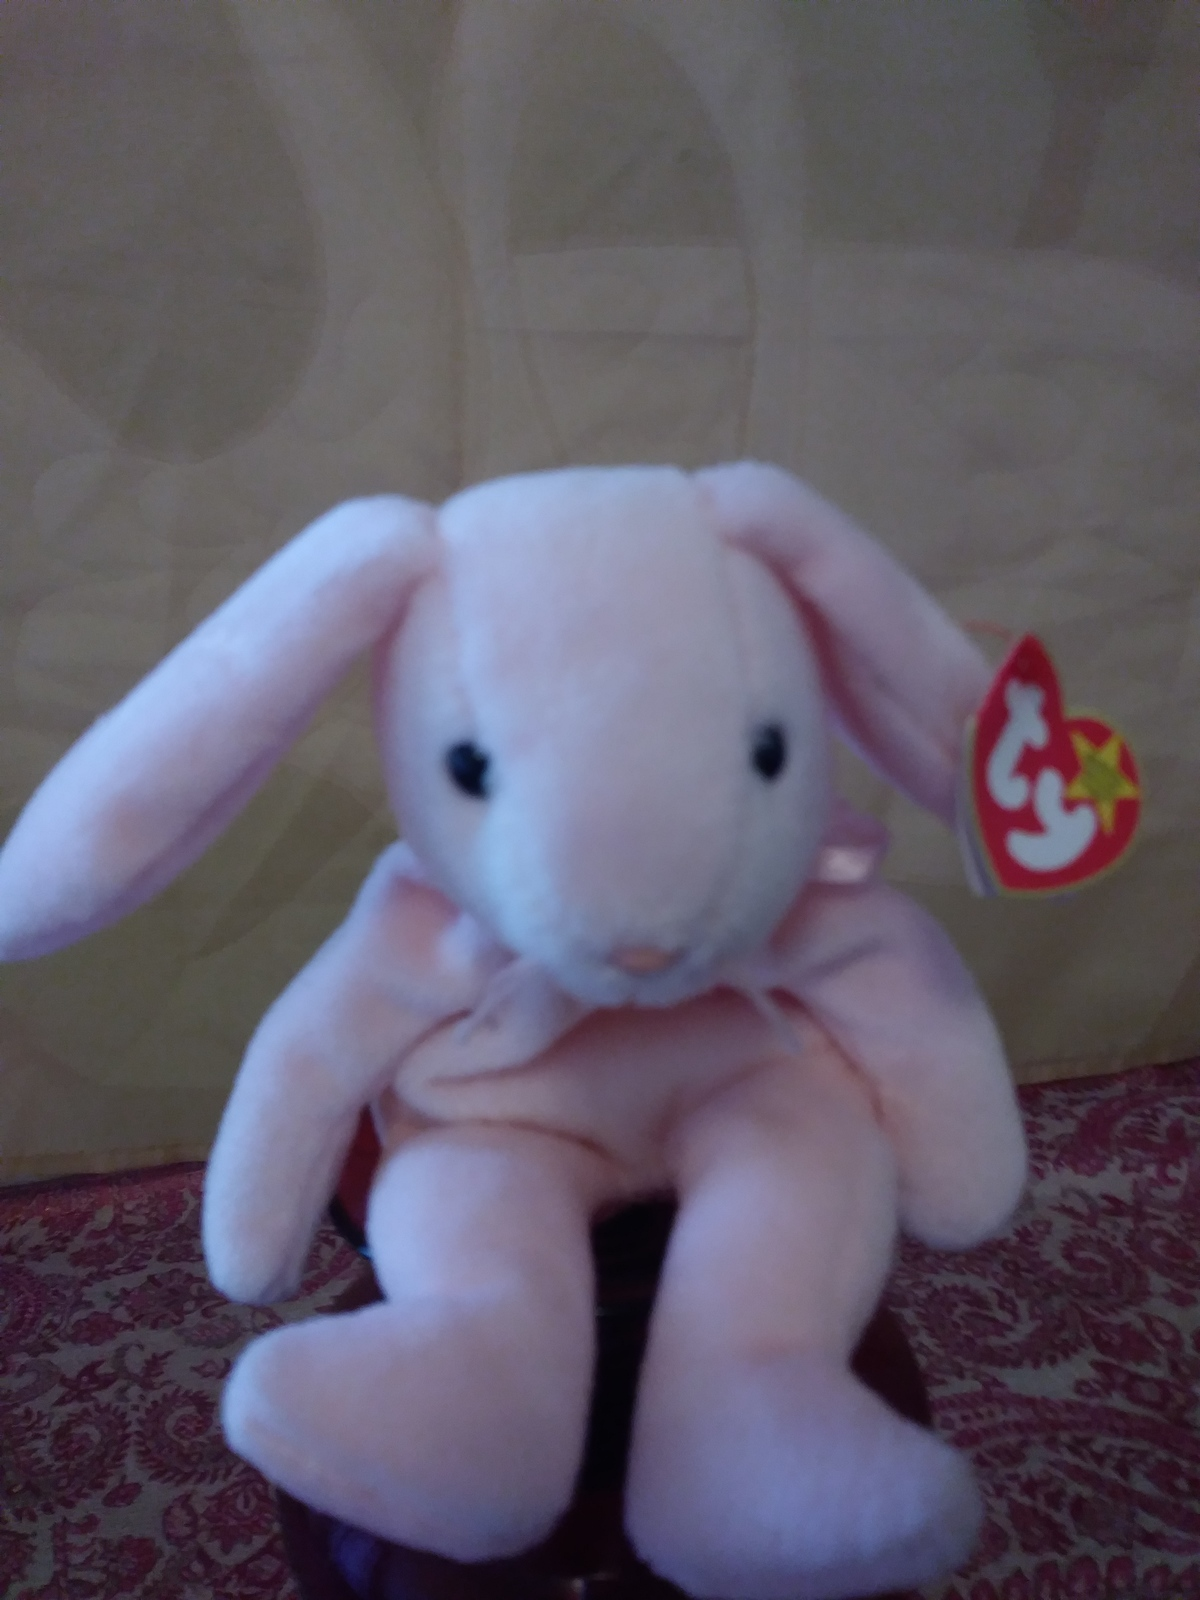 f0d74338846 Ty Beanie Baby Hoppity  Vintage 1996 pink and 50 similar items.  1523054349337255140901. 1523054349337255140901